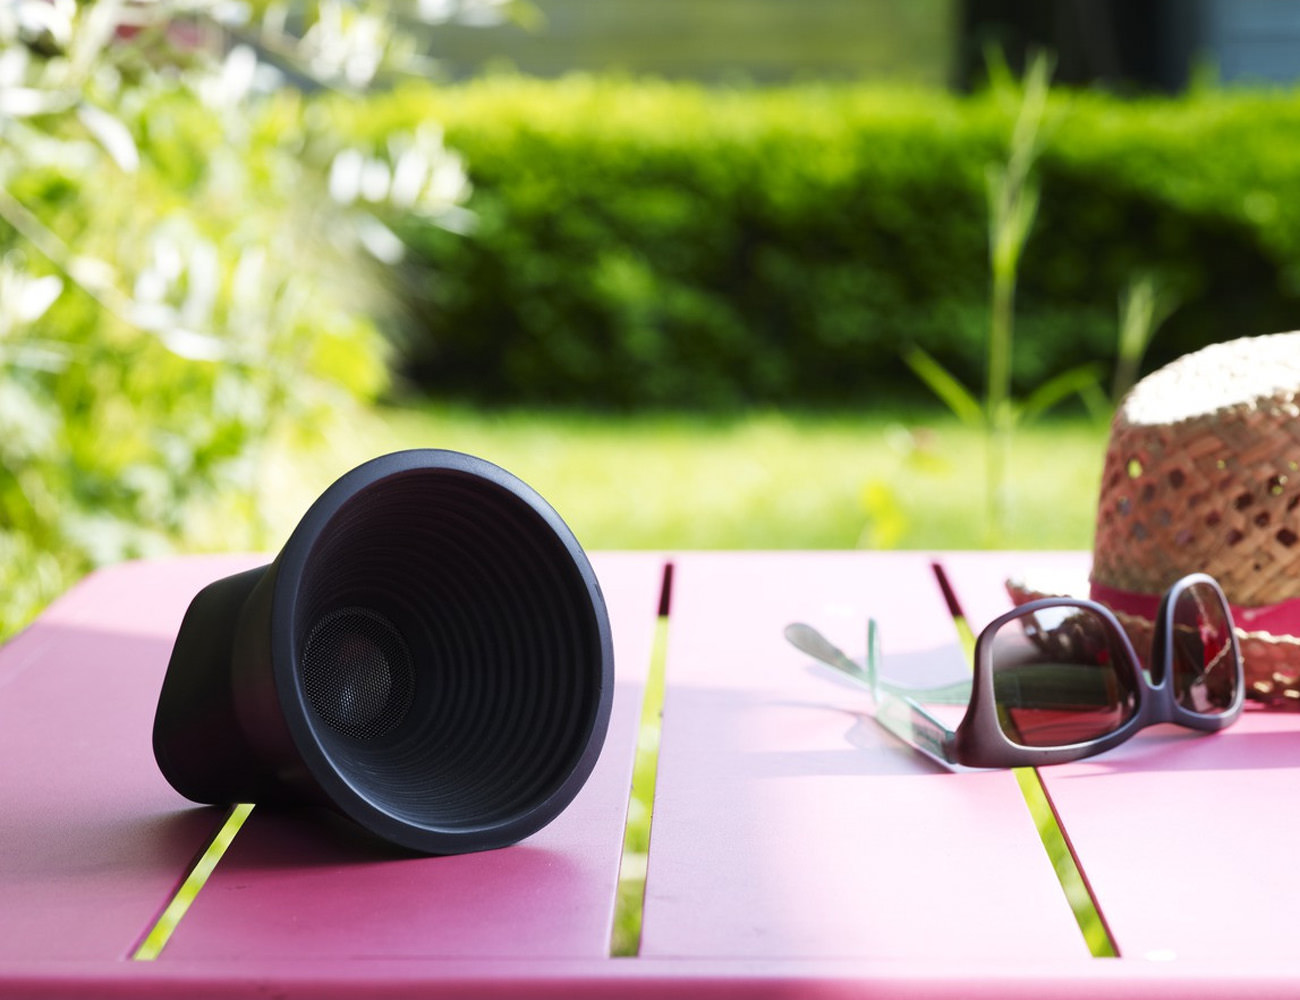 Kakkoii WOW Rubberized Bluetooth Speaker